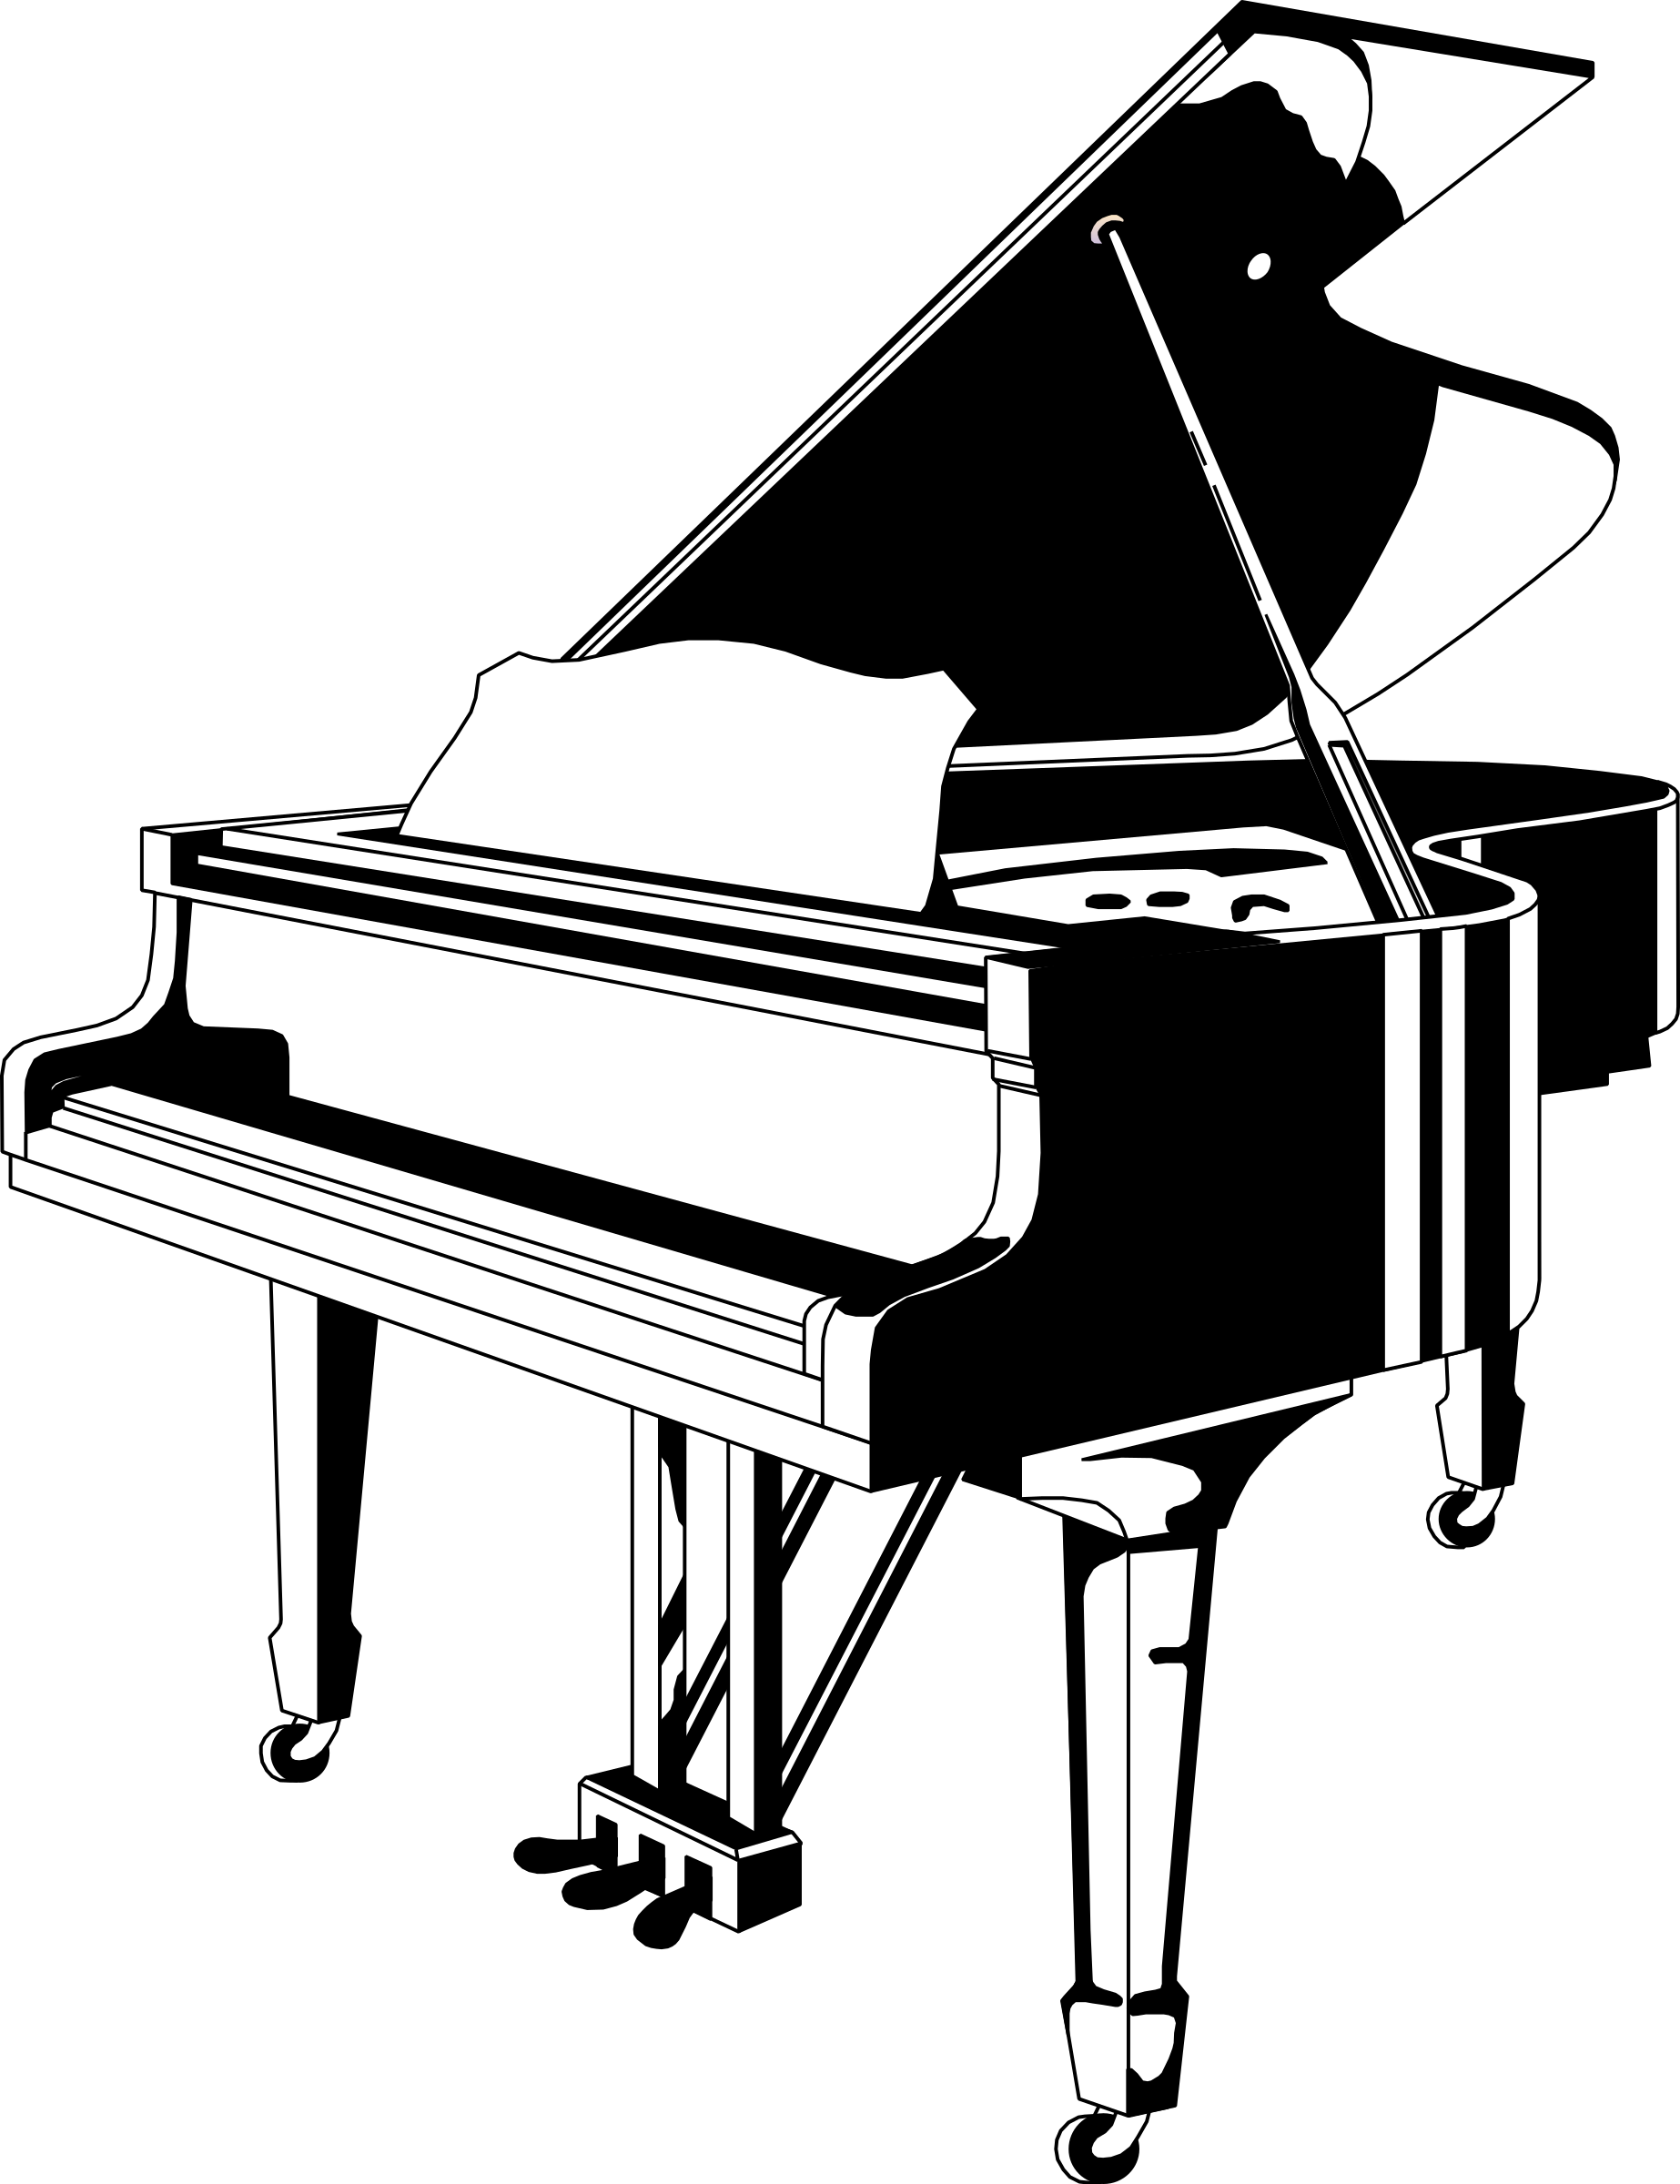 Jazz clipart jazz piano. Black white big image